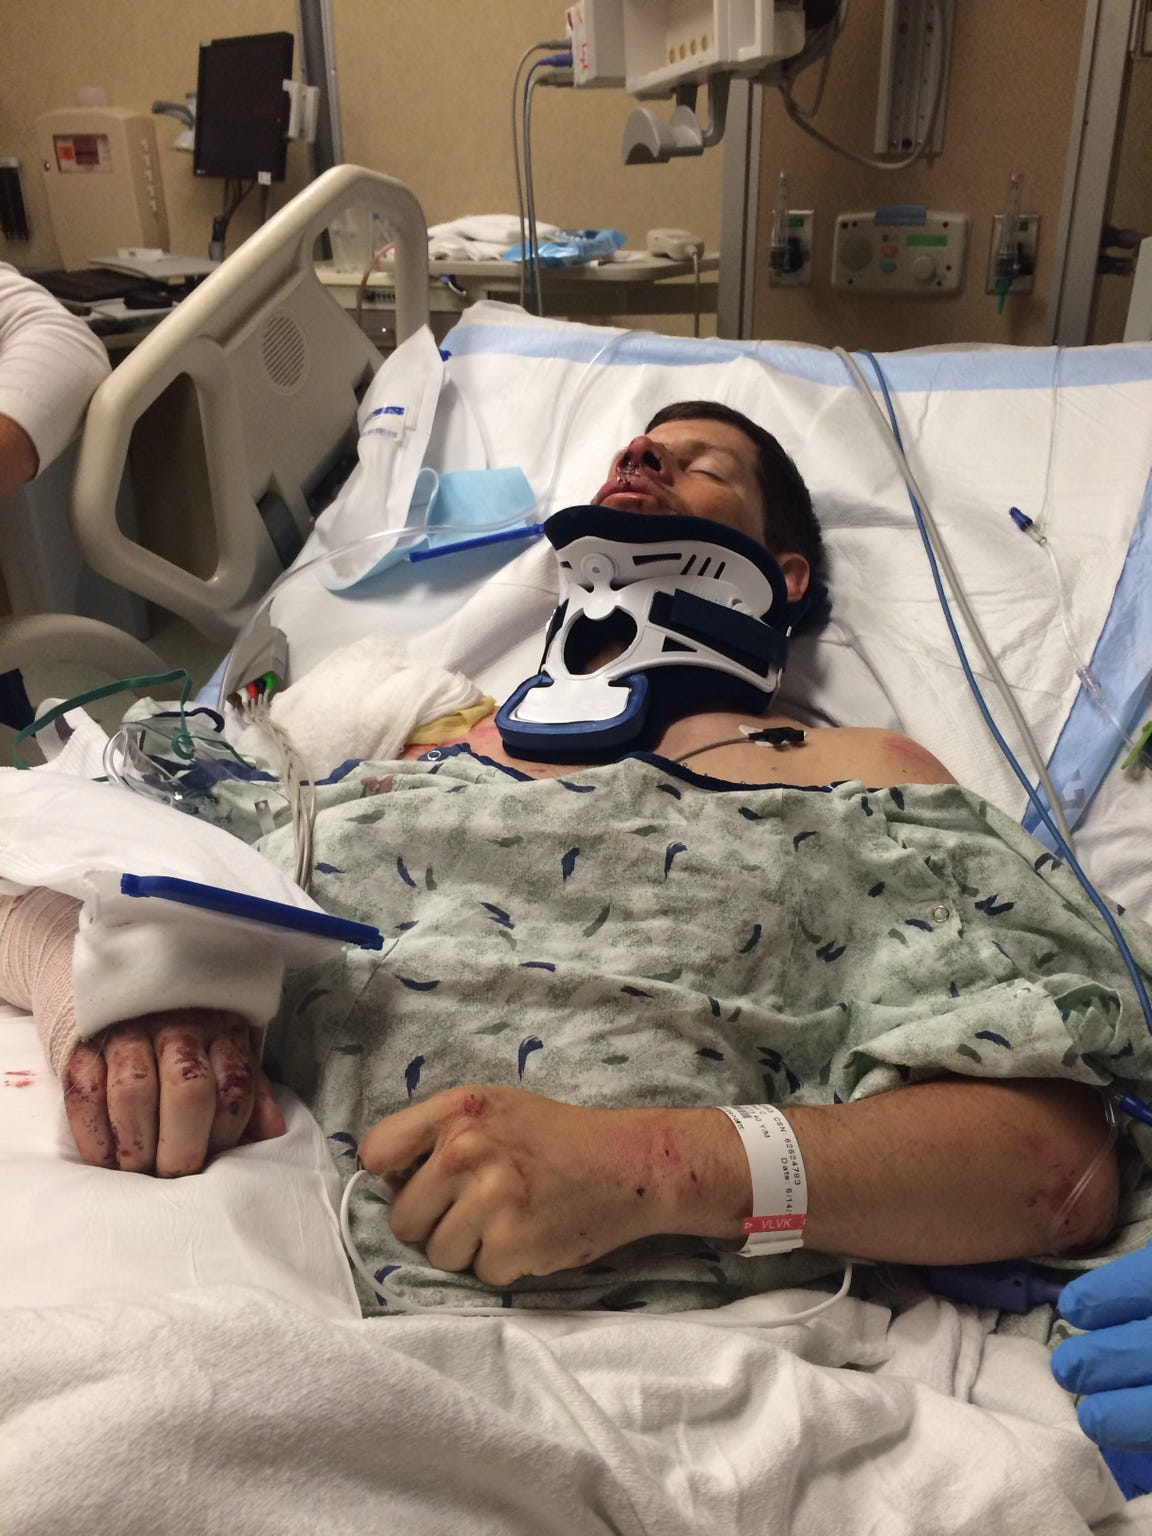 Jeff spent 11 days in a hospital bed for injuries including